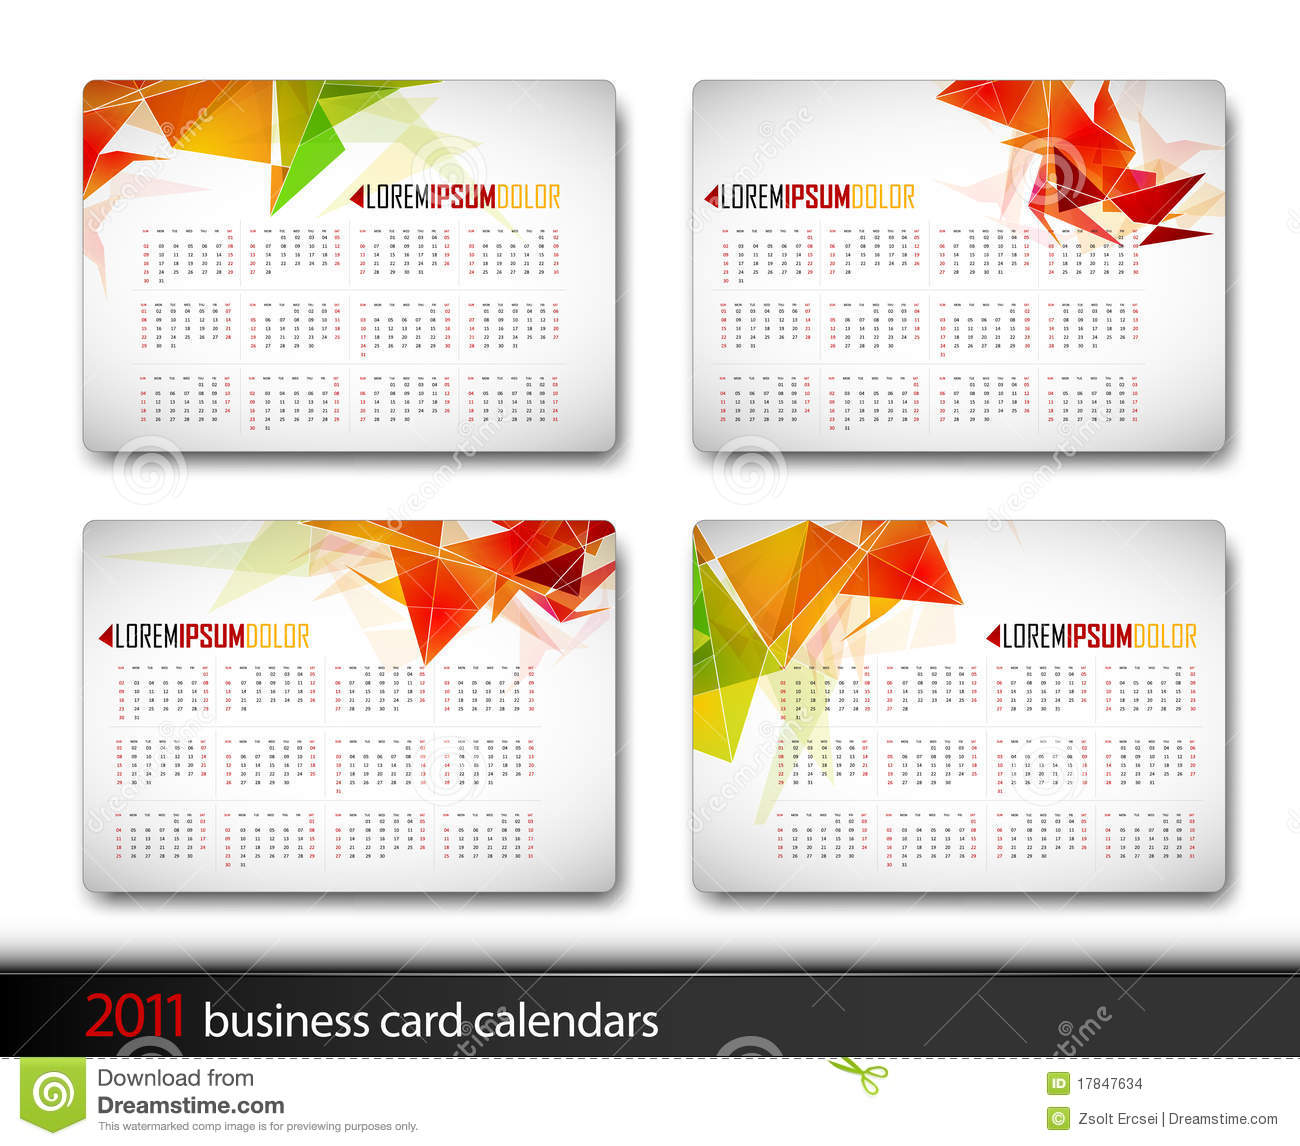 Wonderful 10 Minute Resume Builder Big 1096 Form Template Shaped 13b Porting Templates 15 Year Old Resumes Youthful 2 Page Resume Sample Format Brown2013 Sharepoint Templates 2011 Calendar Template Stock Images   Image: 17847634